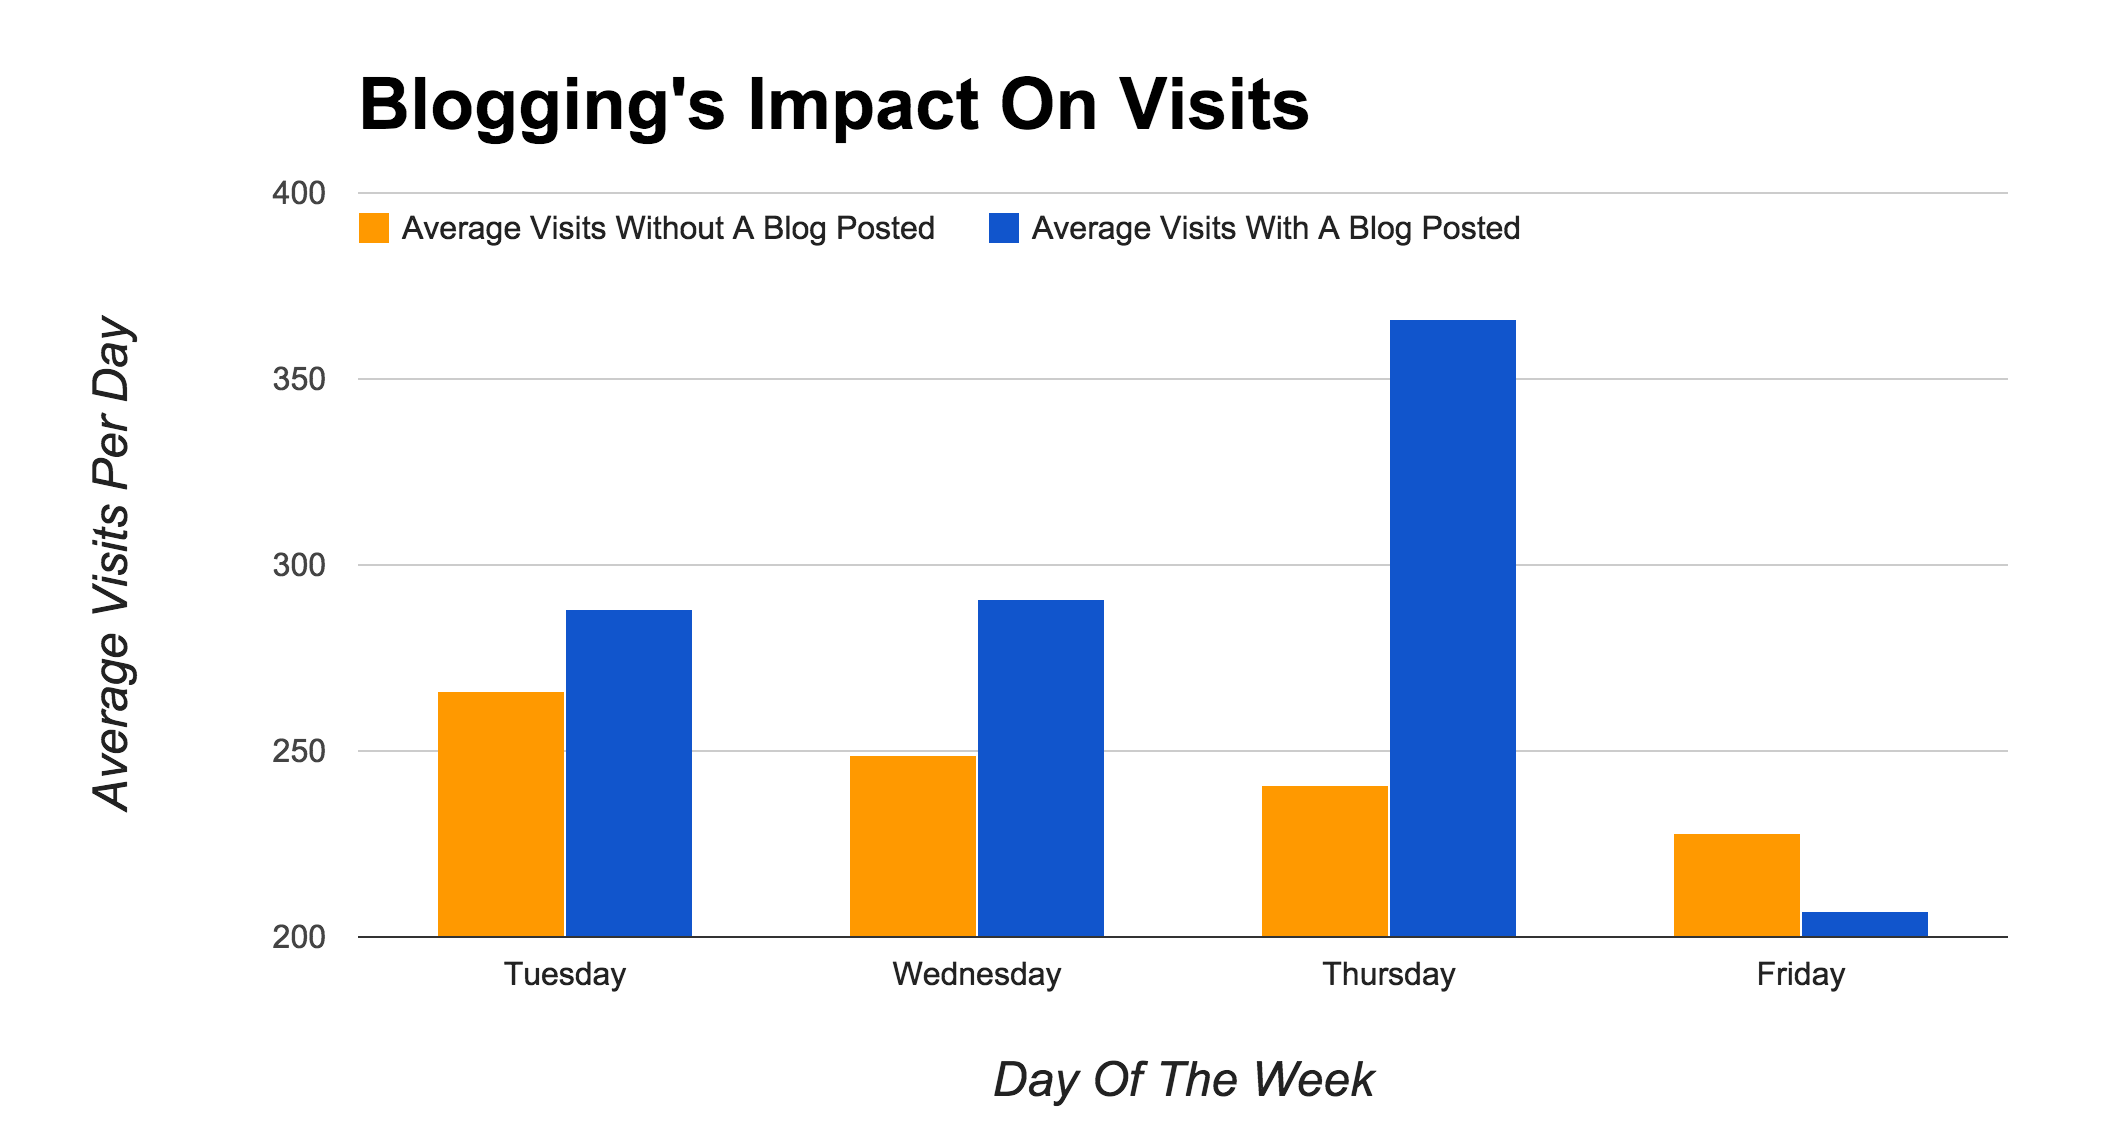 Blogging Impact On Visits